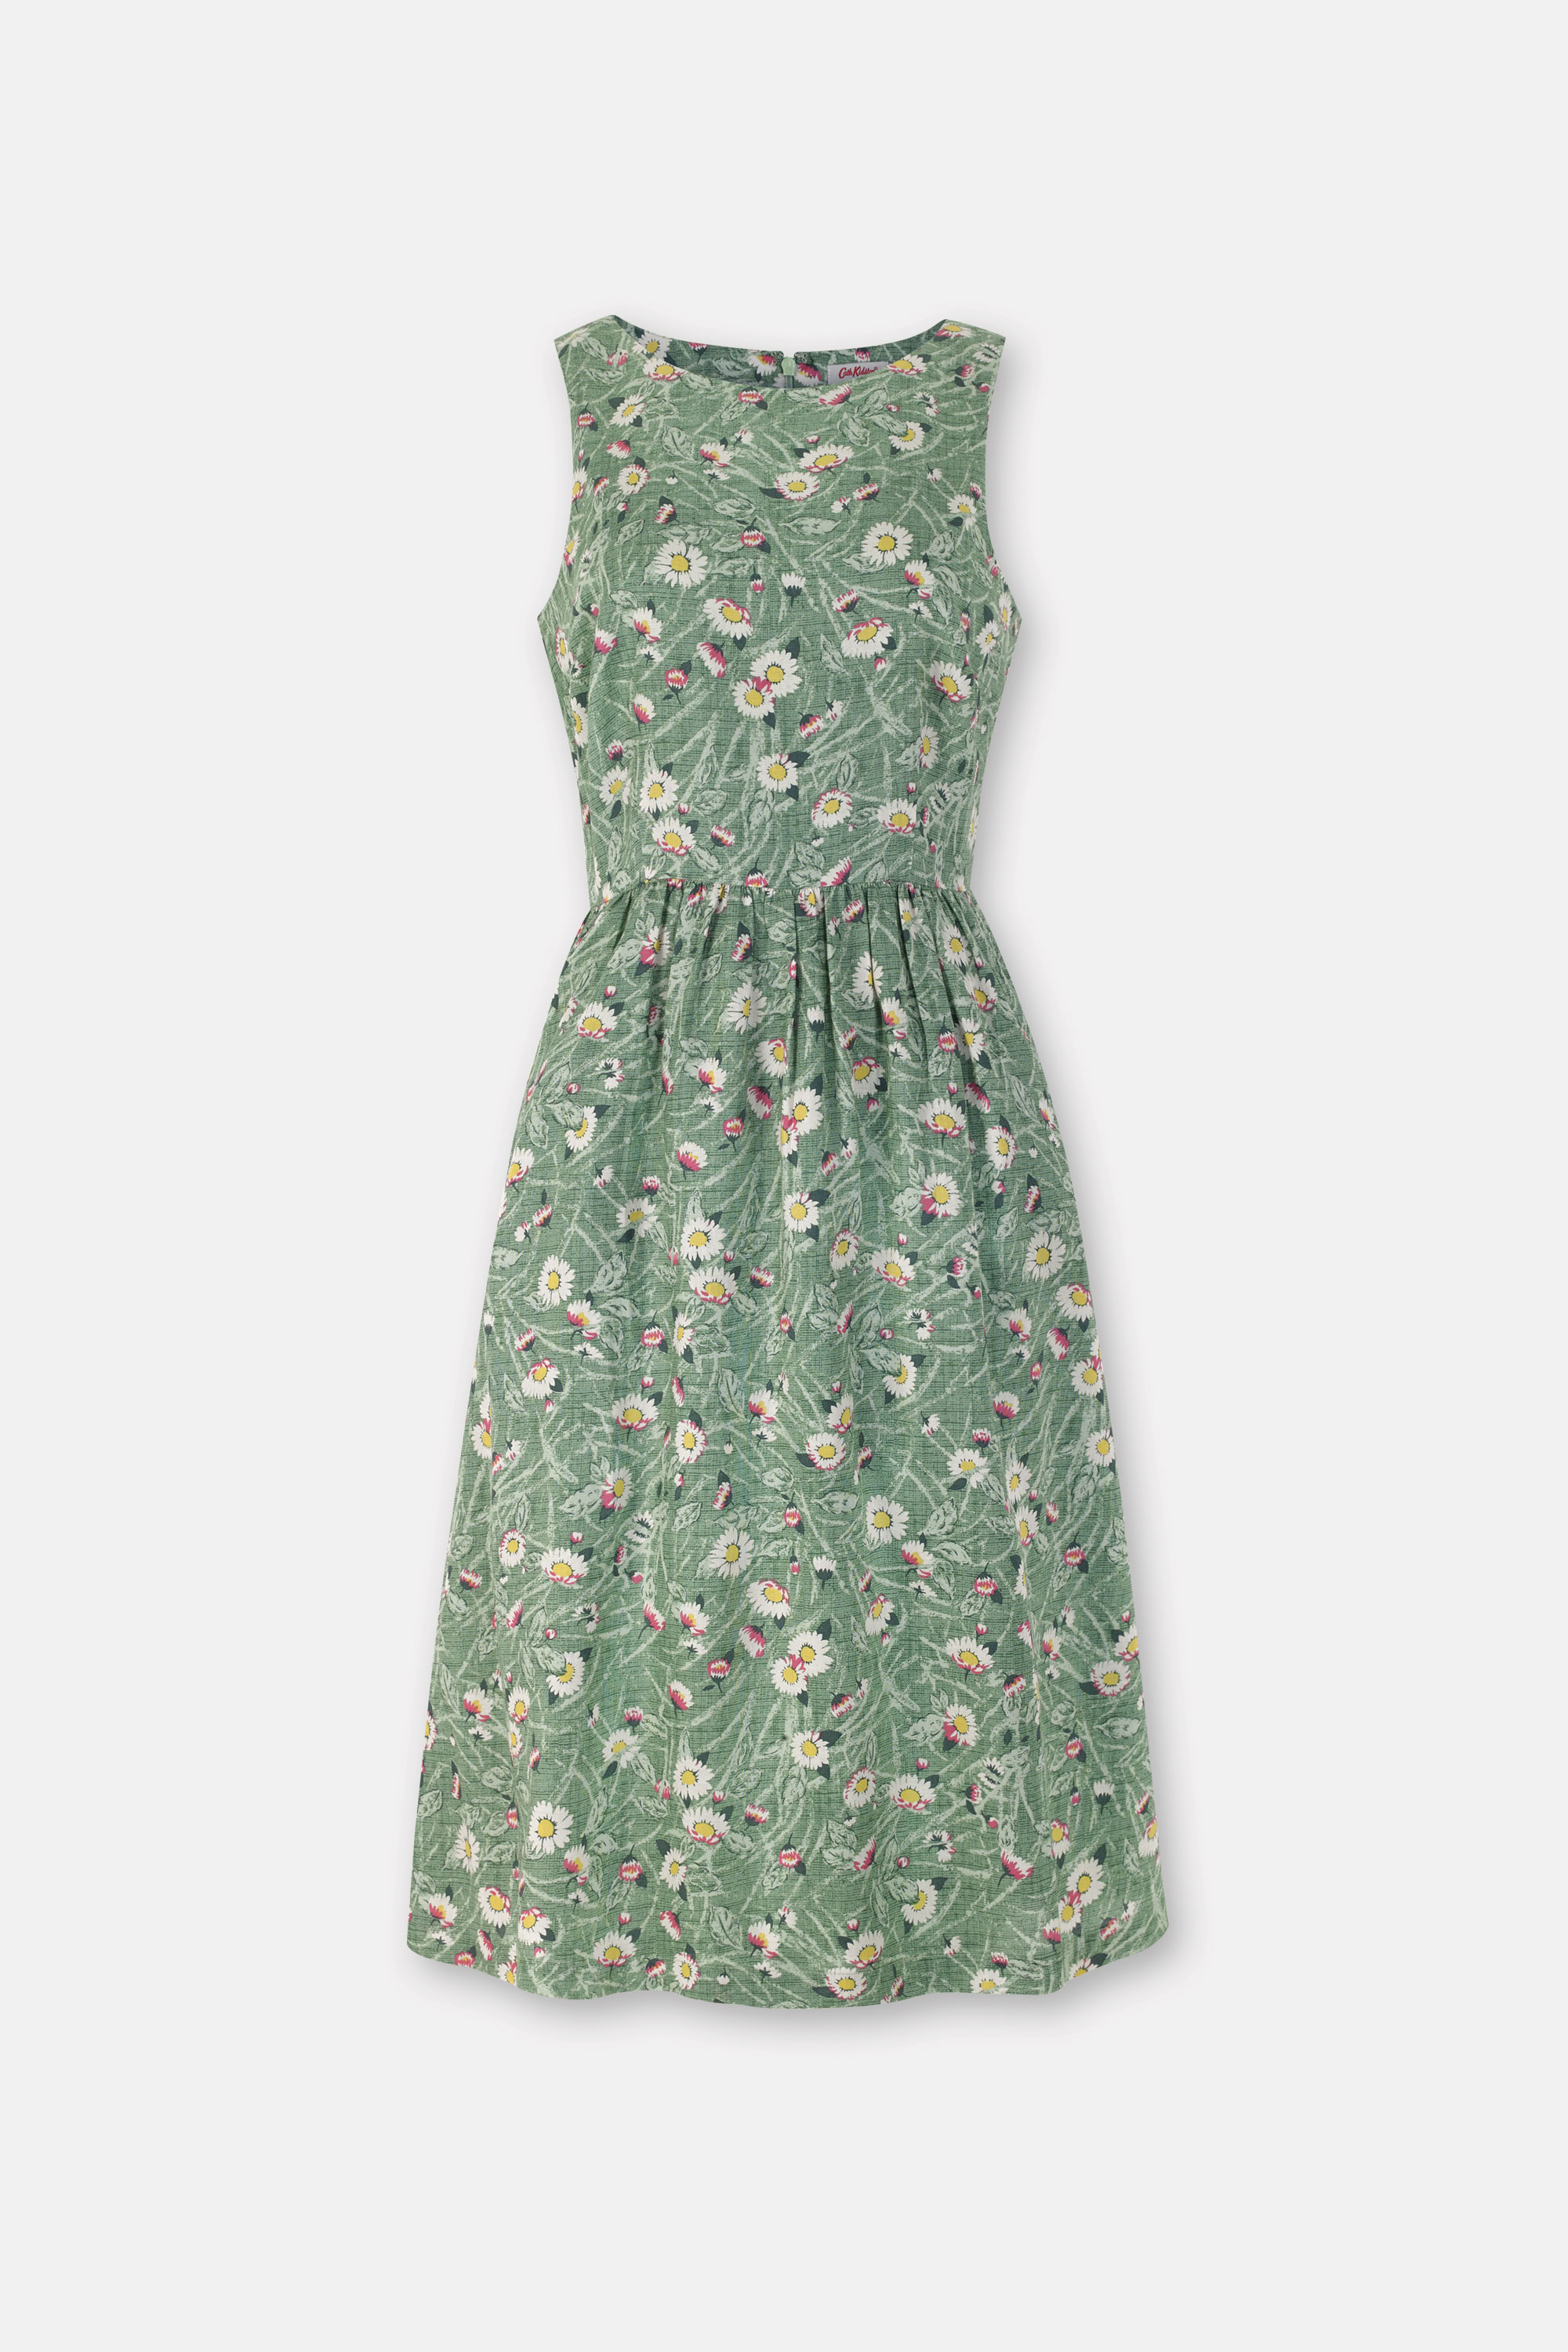 Cath Kidston Floral Green Fit & Flare Dress in Grass Green, Wild Daisies, Cotton, 8